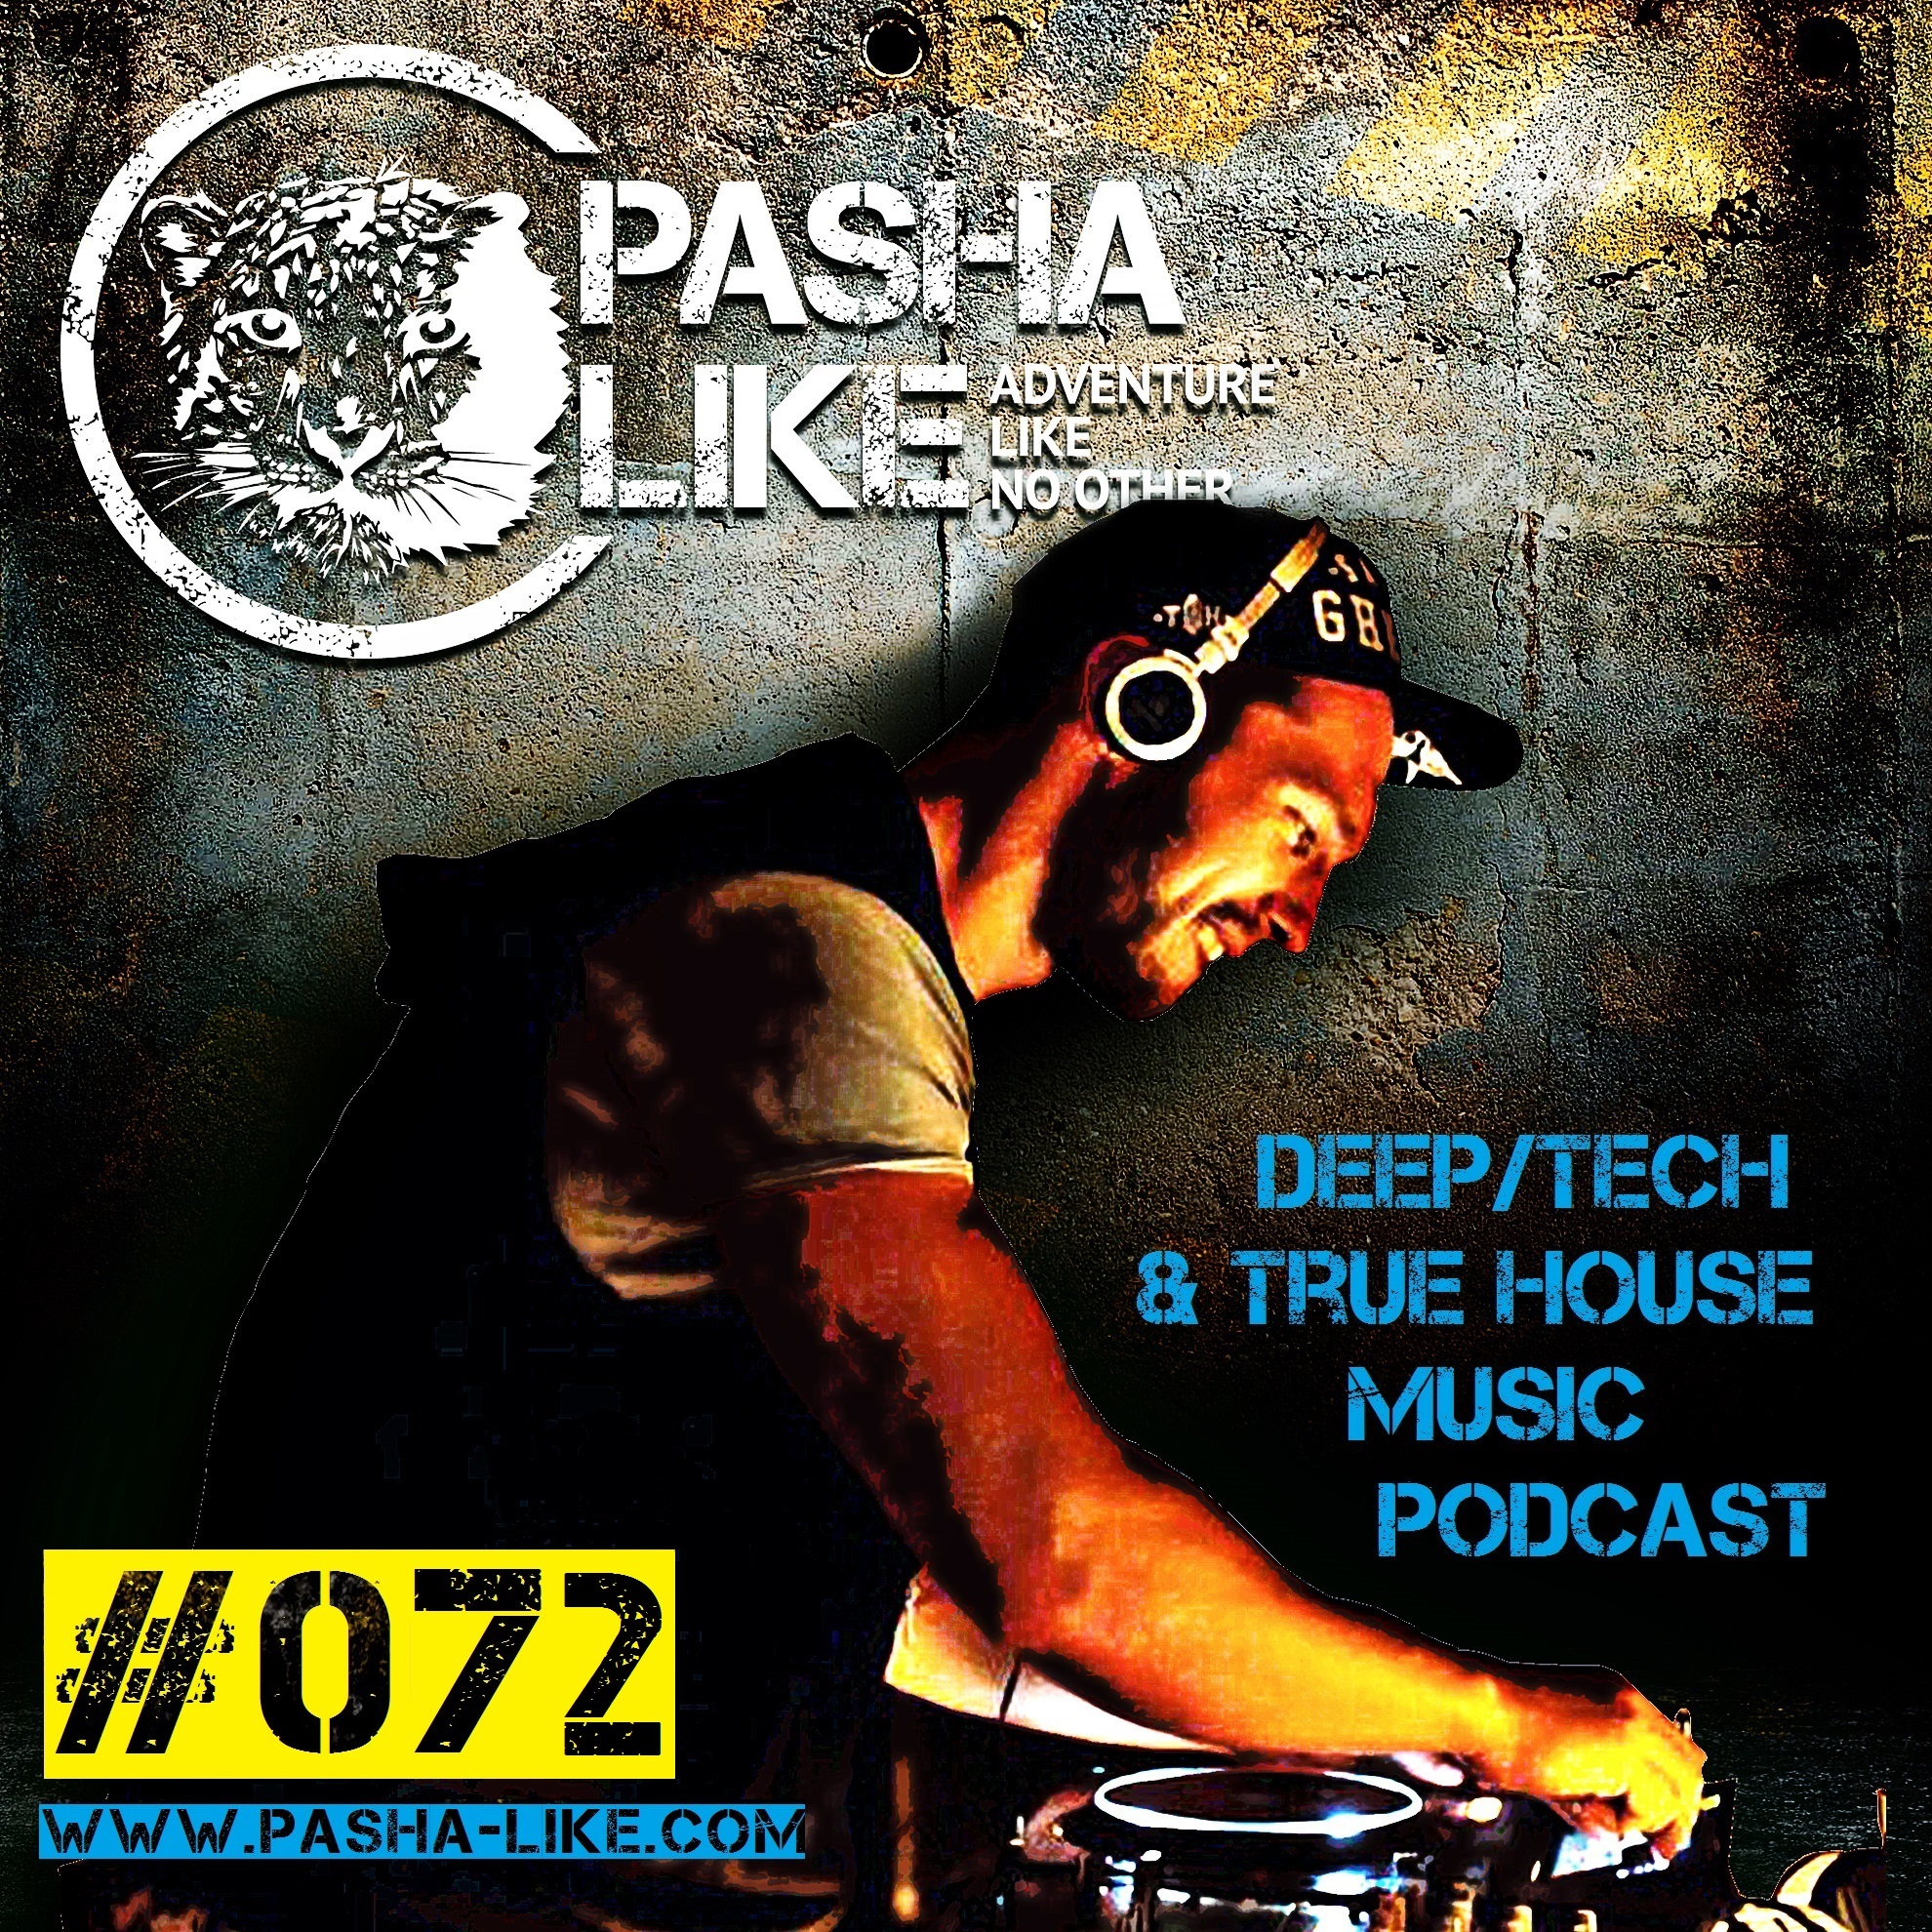 Deep tech true house music podcast by pasha like for House music podcast